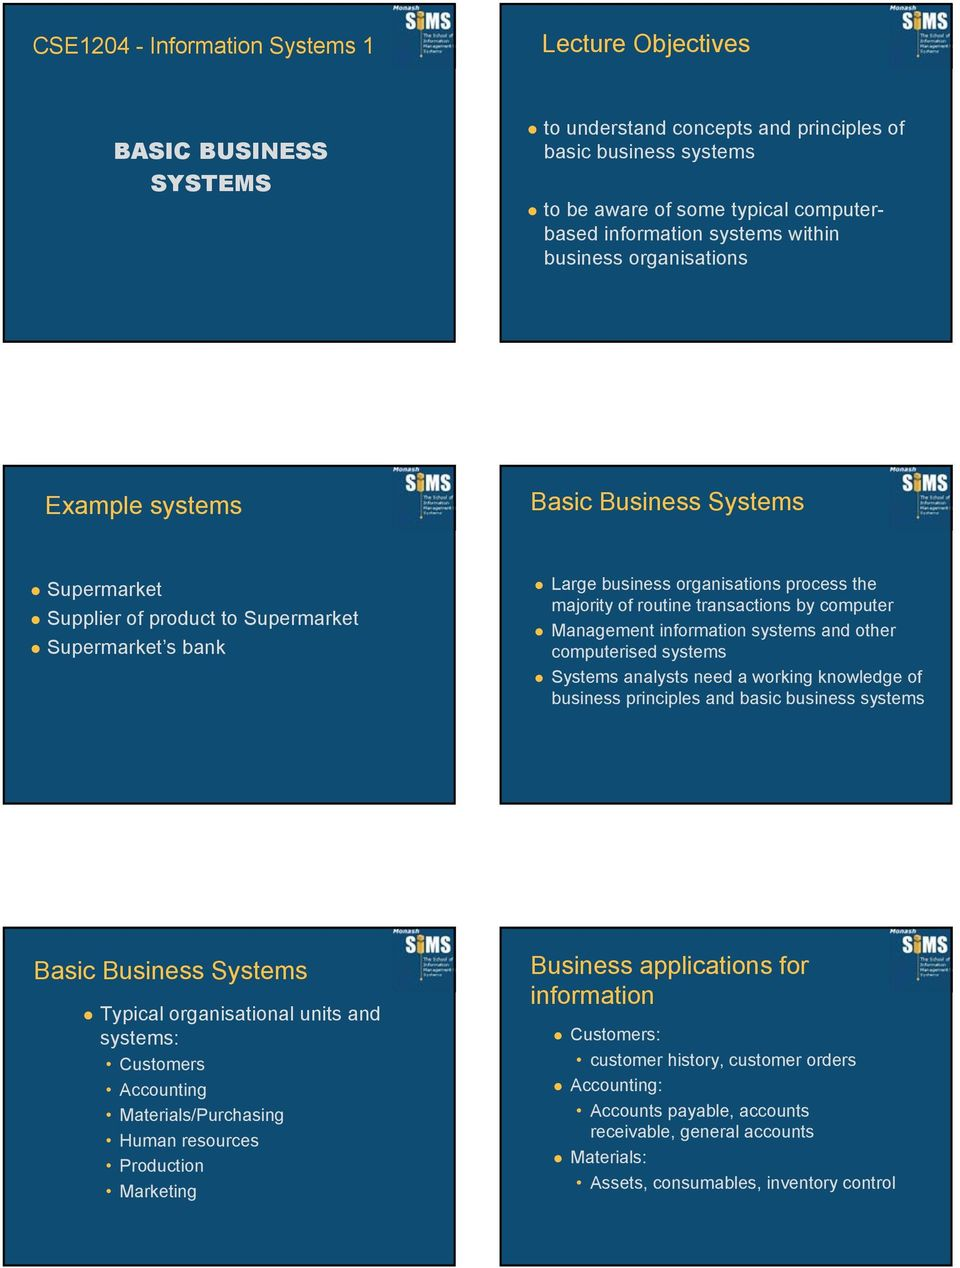 transactions by computer Management information systems and other computerised systems Systems analysts need a working knowledge of business principles and basic business systems Basic Business